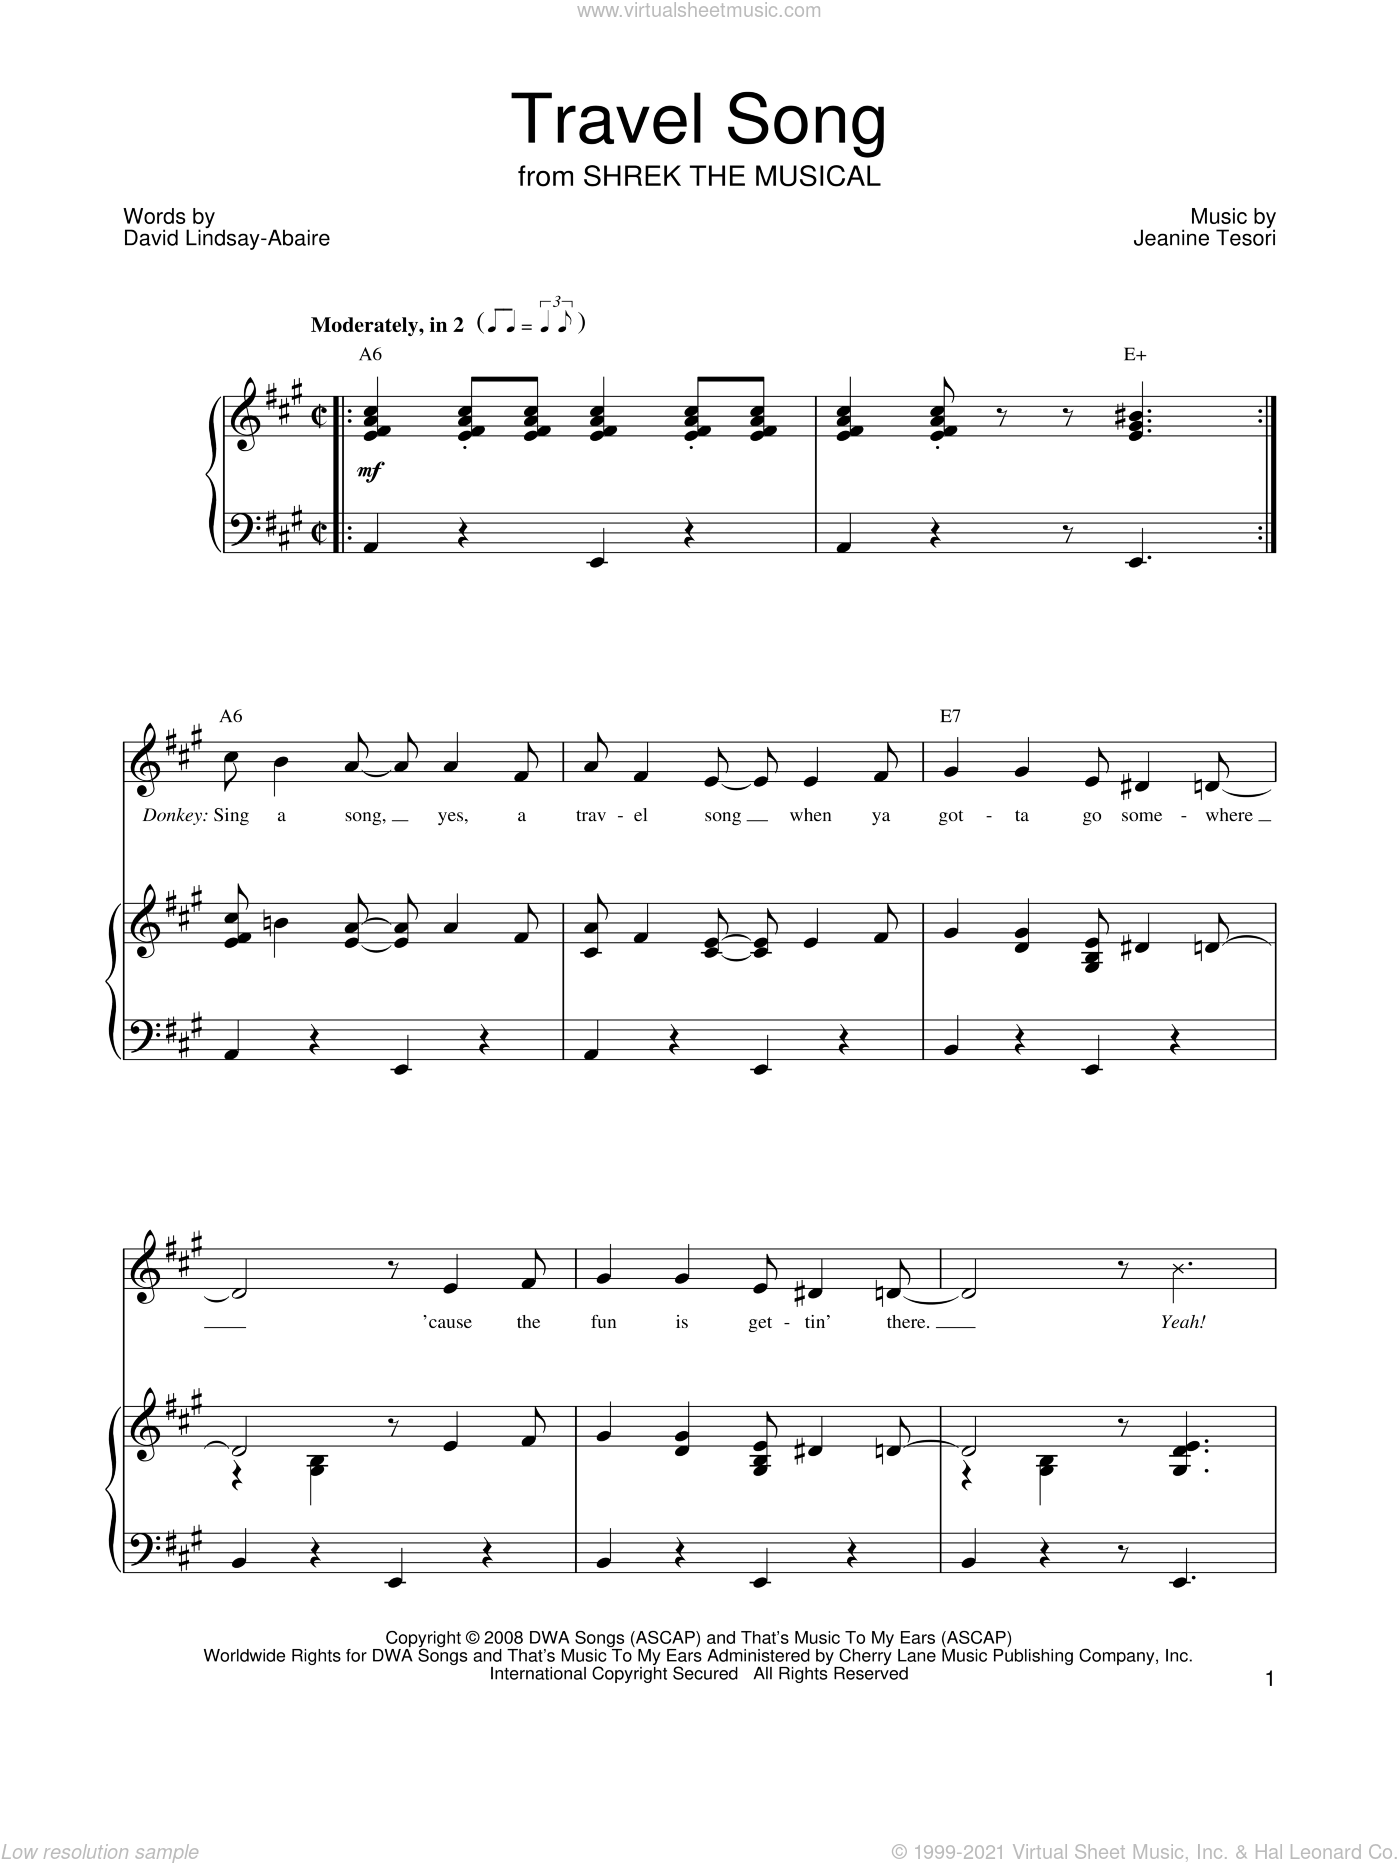 Travel Song sheet music for voice, piano or guitar by Shrek The Musical, David Lindsay-Abaire and Jeanine Tesori, intermediate. Score Image Preview.